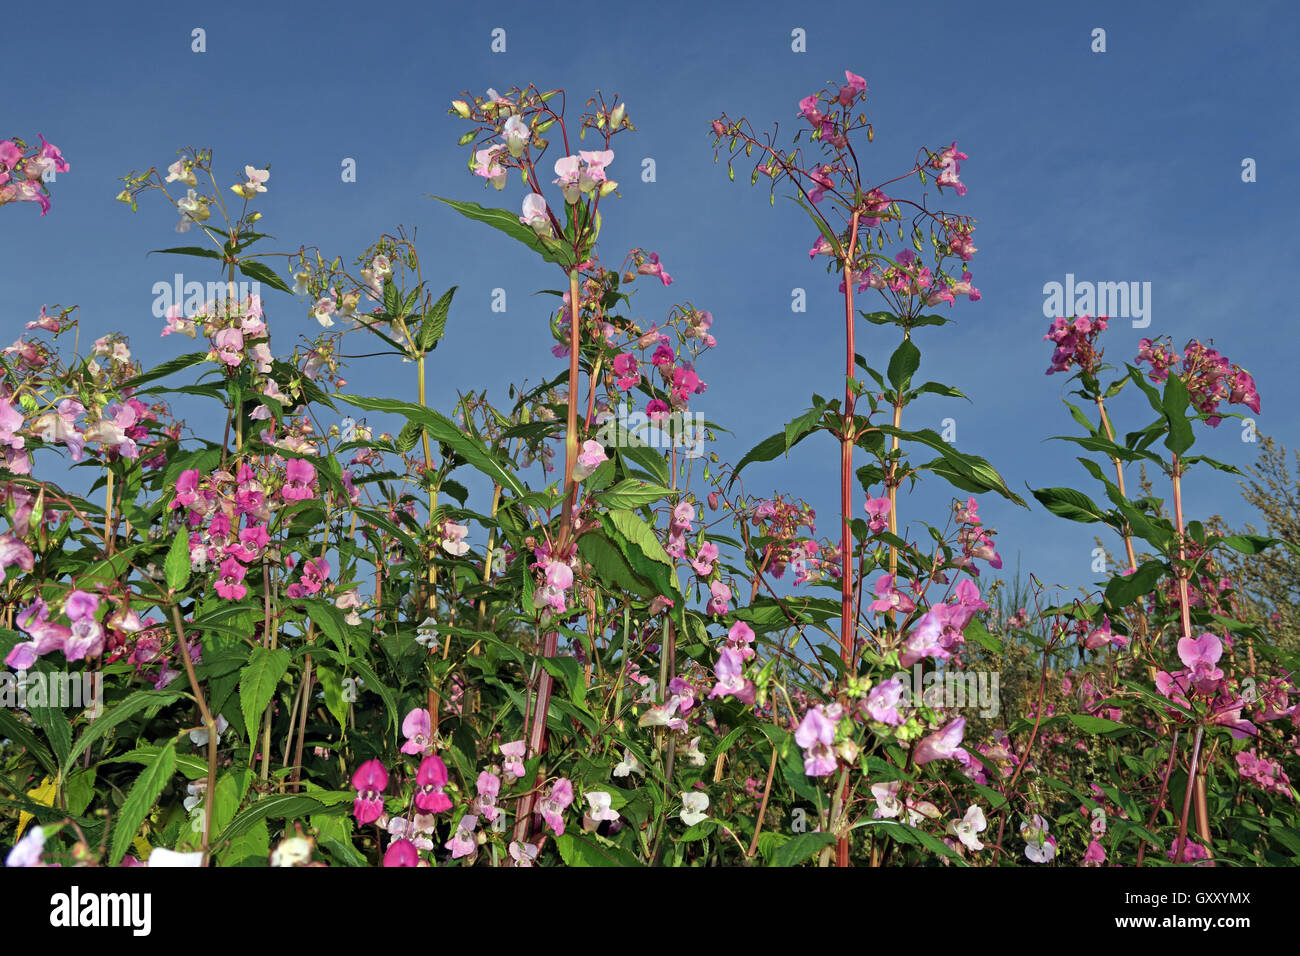 Pink Himalayan Balsam flowers, invasive weed, growing along Mersey river, Paddington Meadows, Warrington, Cheshire - Stock Image